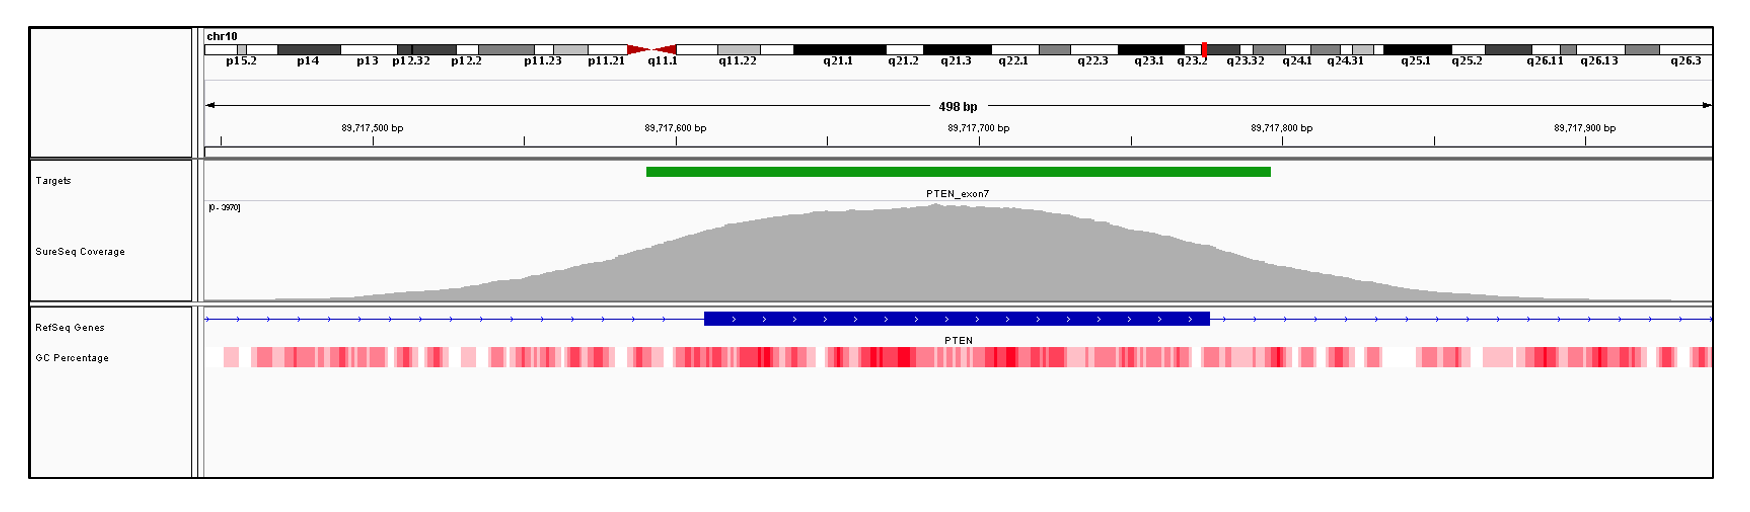 PTEN Exon 7 (hg19 chr10:89717610-89717776). Depth of coverage per base (grey). Targeted region (green). Gene coding region as defined by RefSeq (blue). GC percentage (red). Image